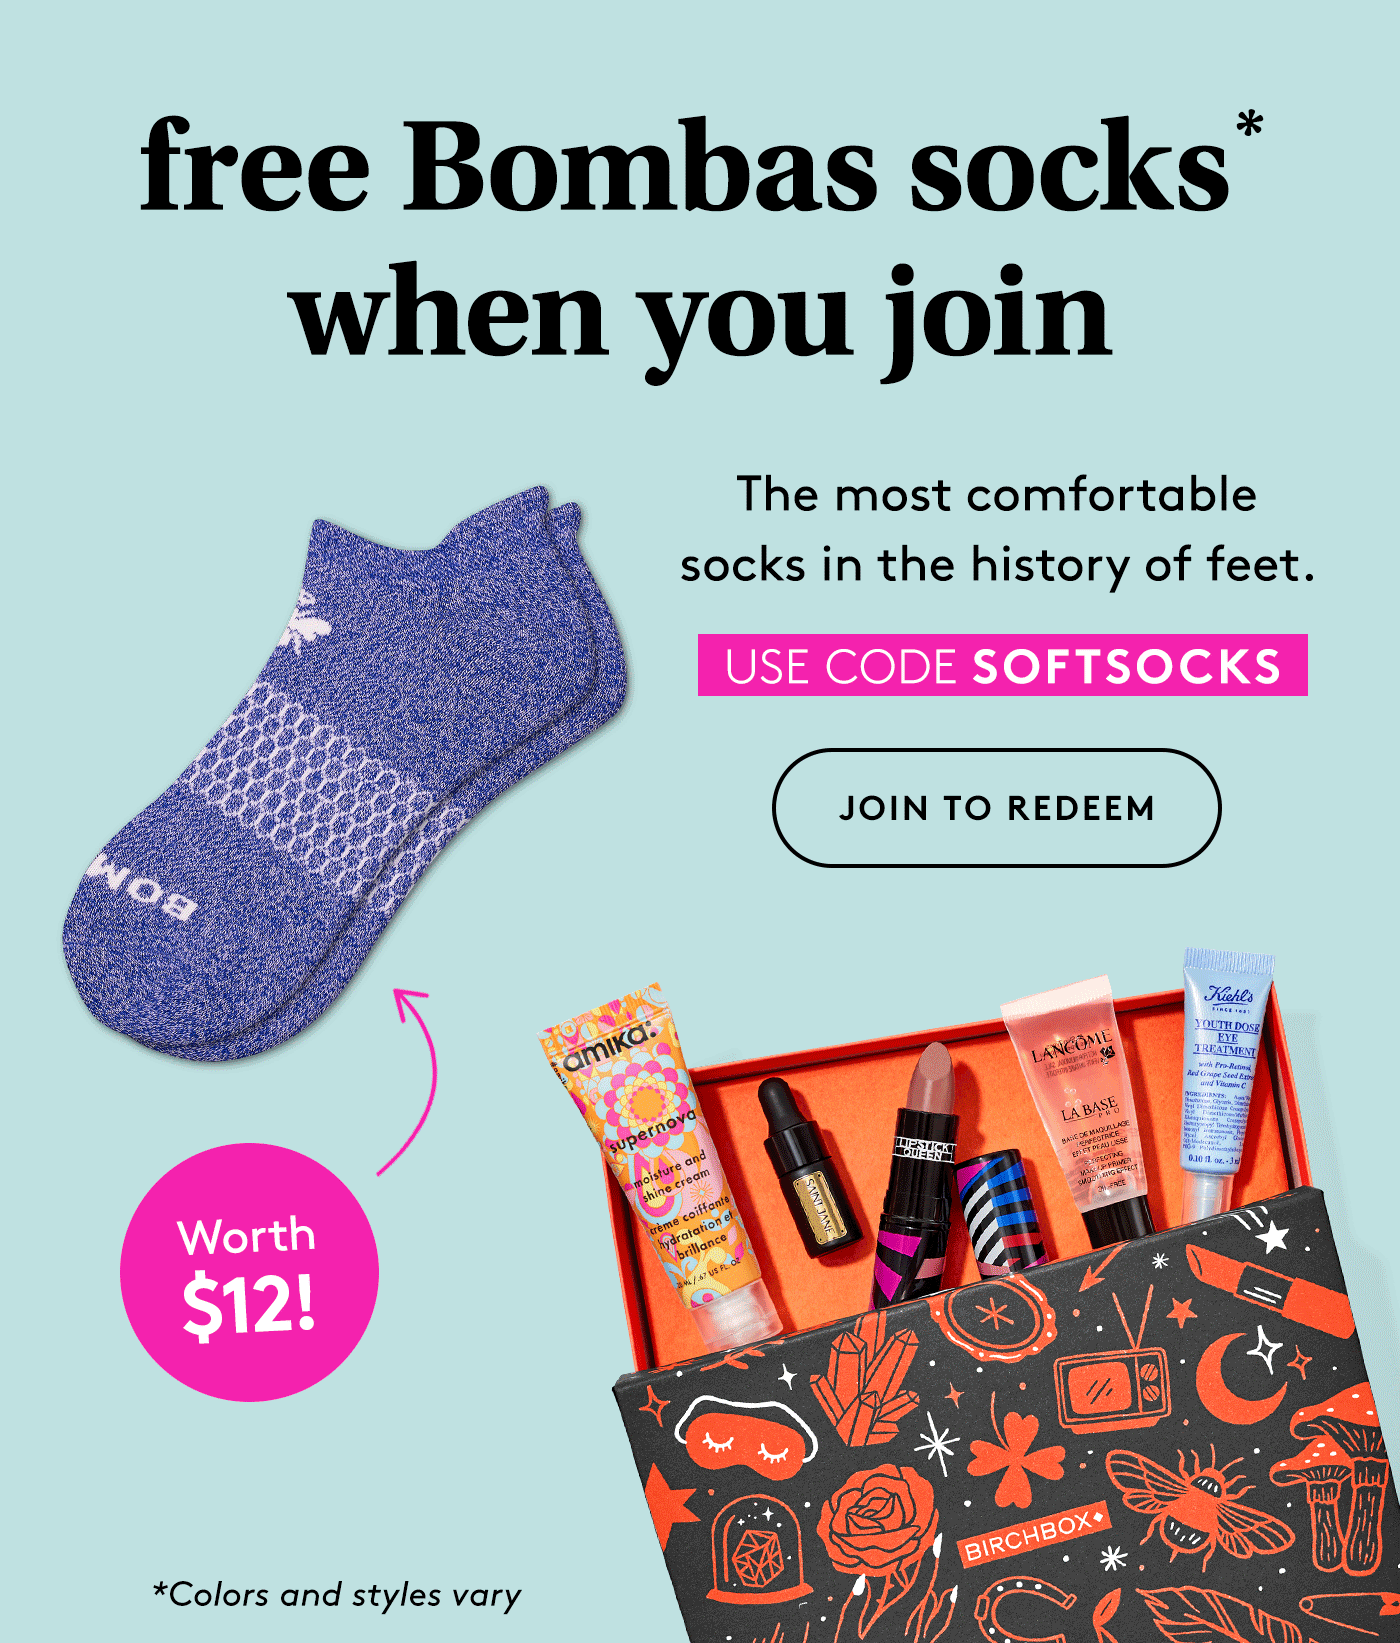 Birchbox Coupon Code: FREE Bombas Socks!